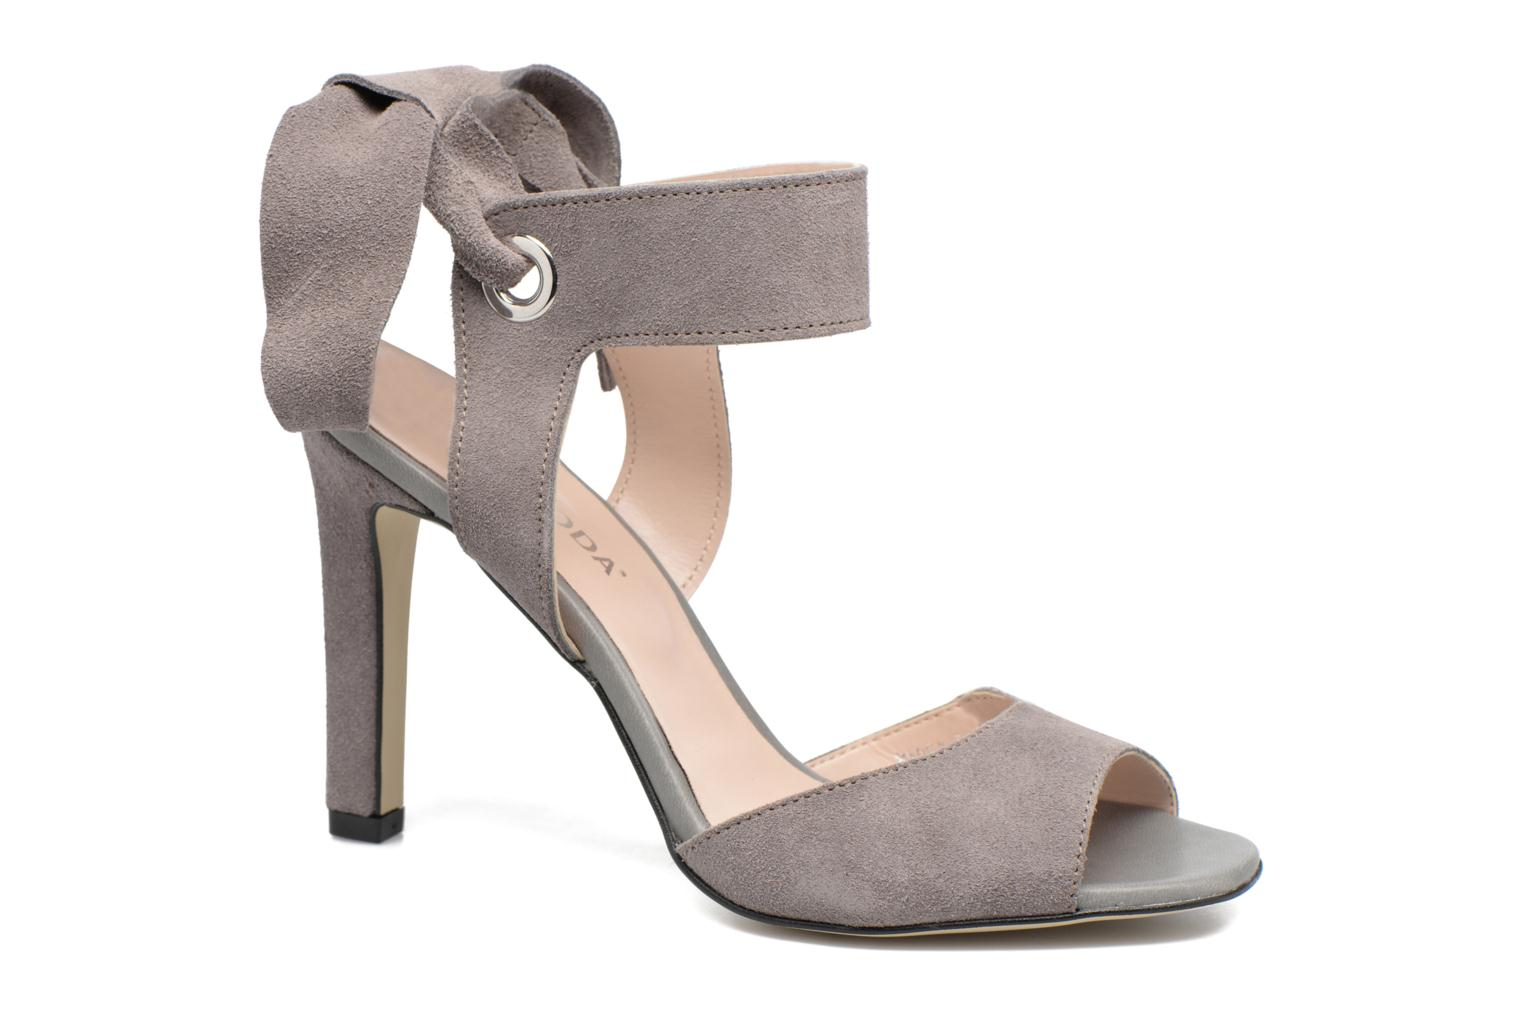 Malene Leather Sandal by Vero ModaRebajas - 40%